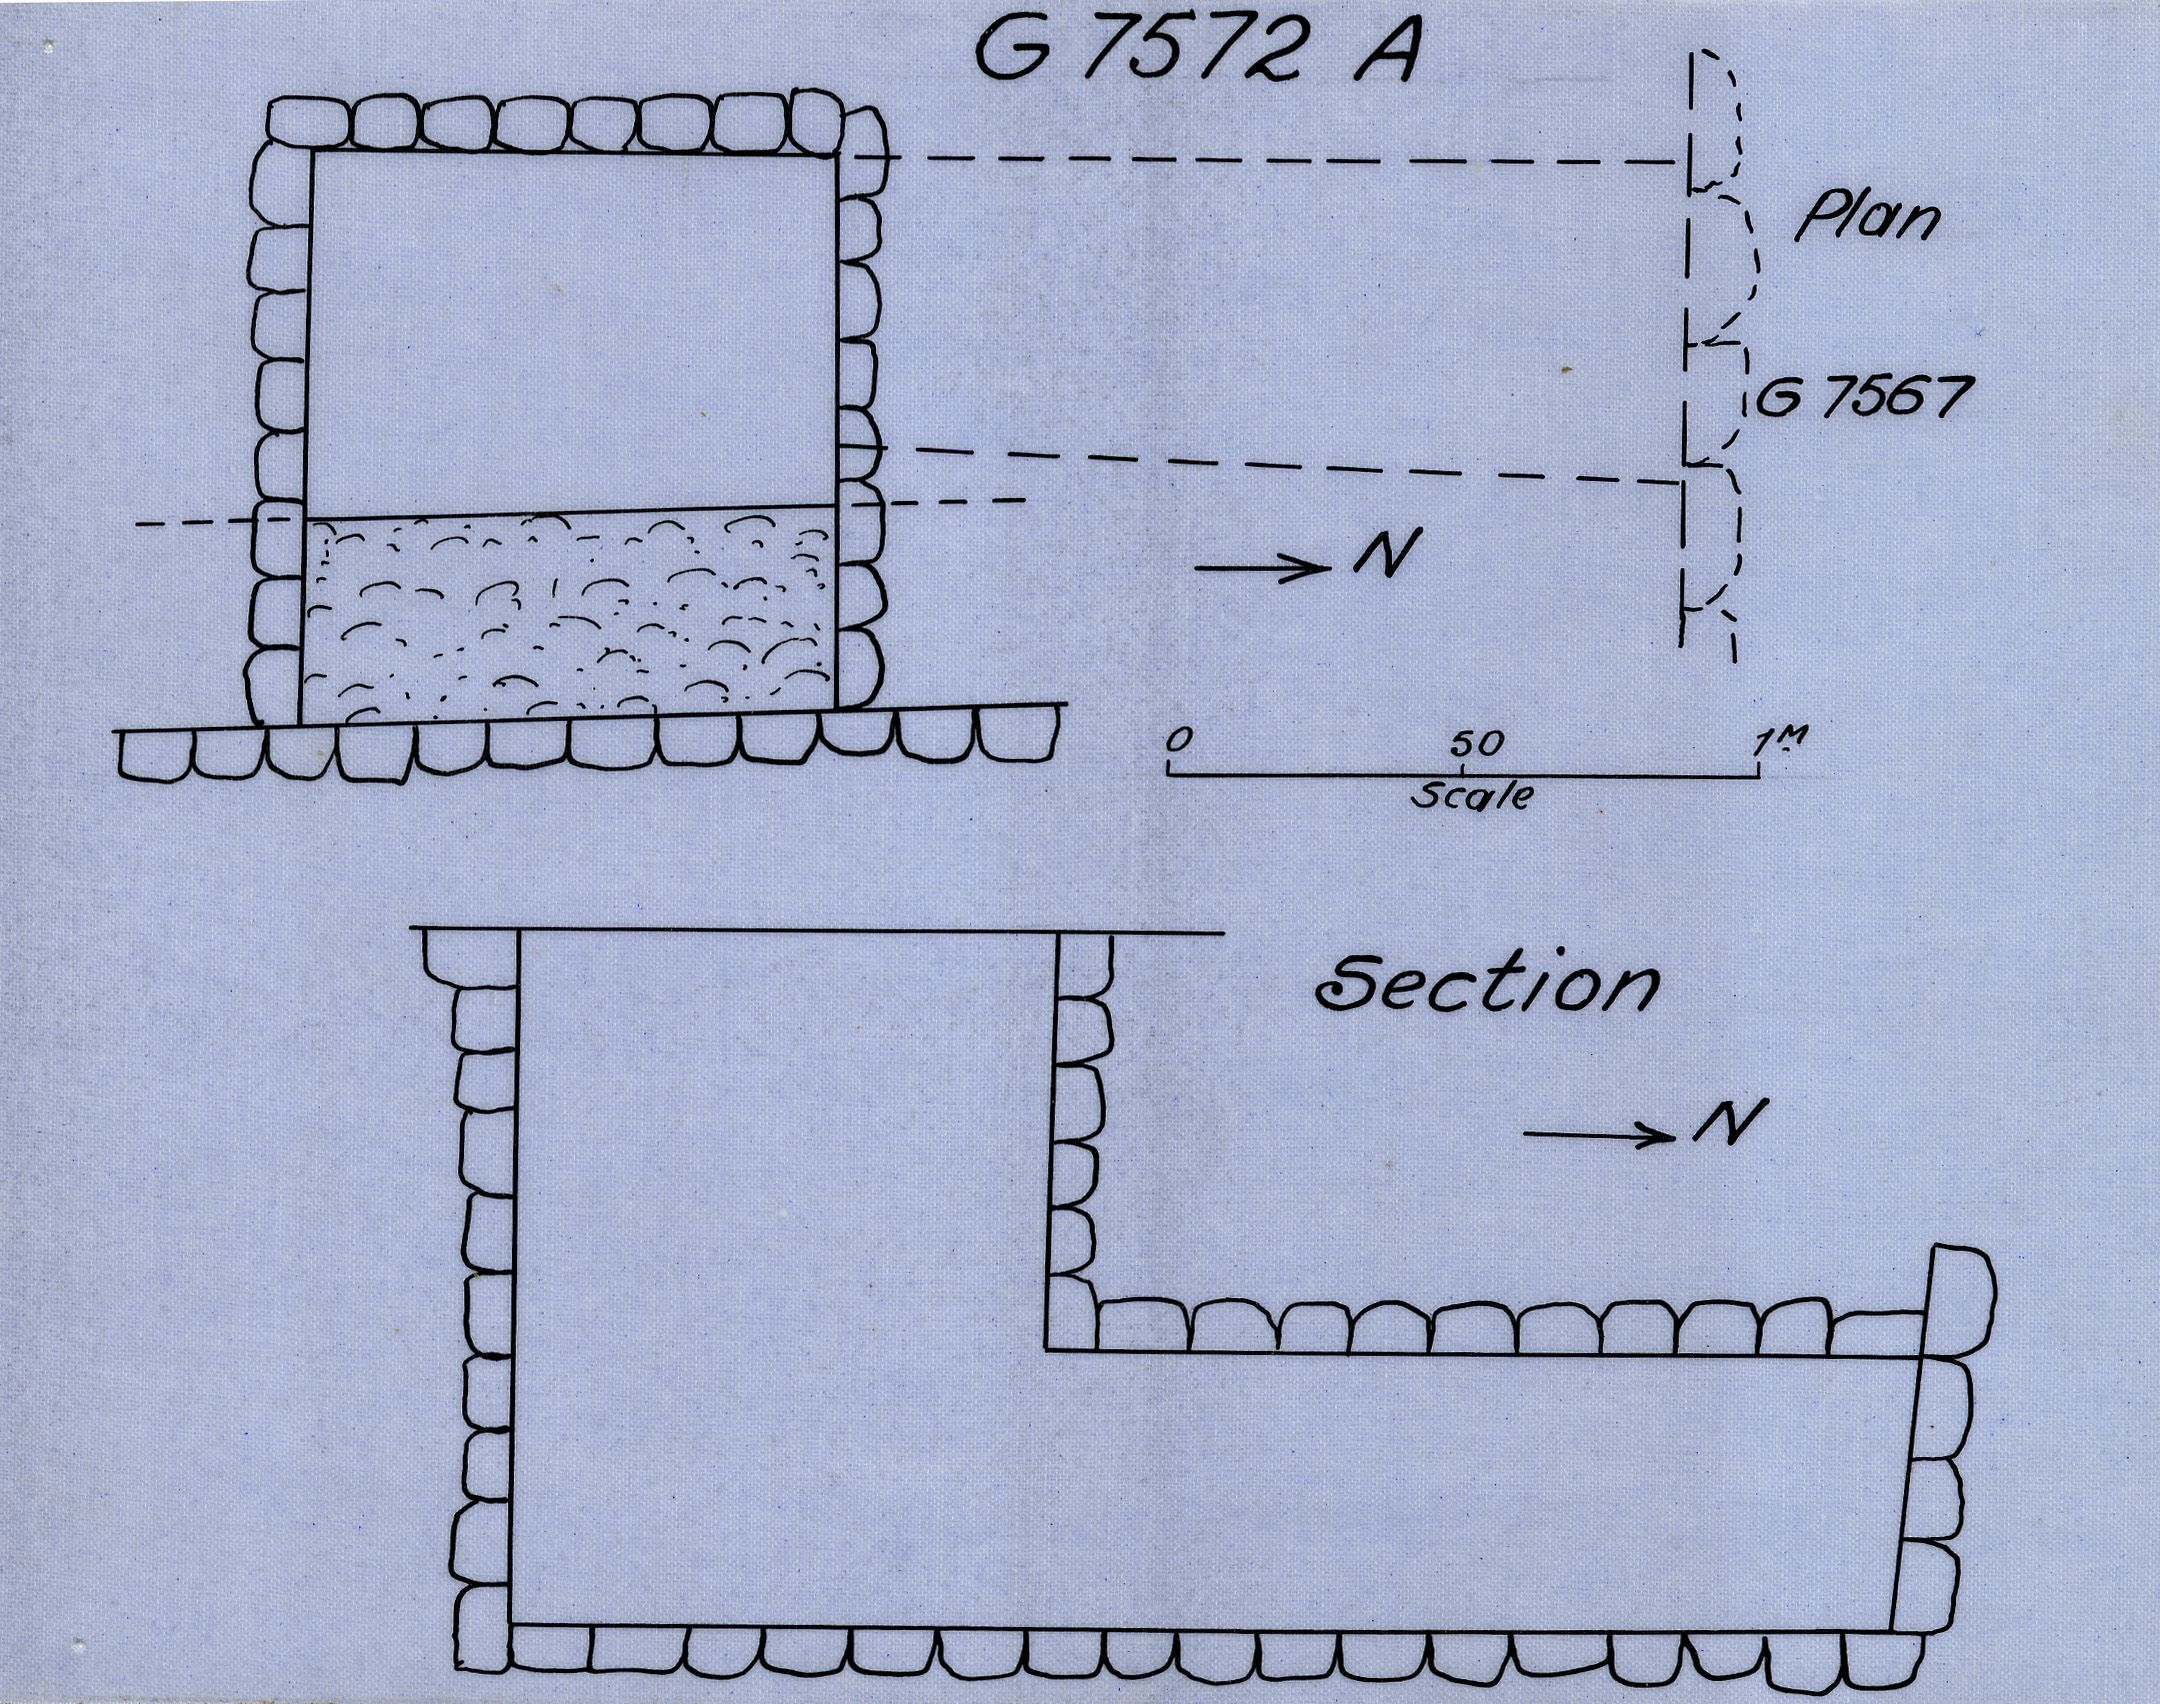 Maps and plans: G 7572, Shaft A